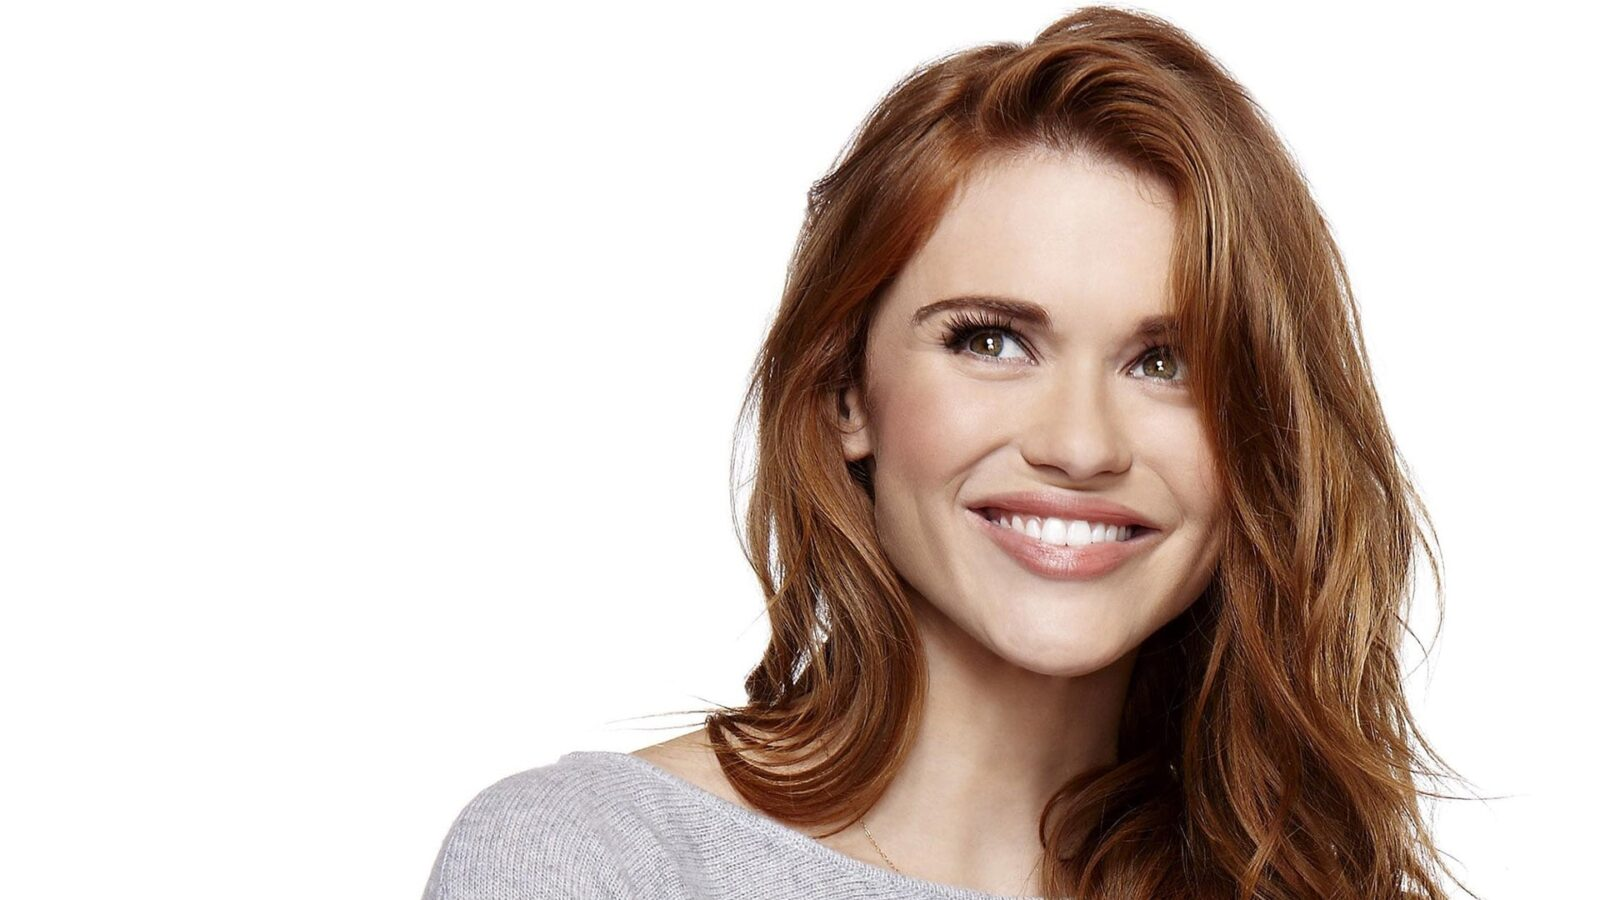 Cute Smile Wallpaper 20 Holland Roden Hd Wallpapers Free Download